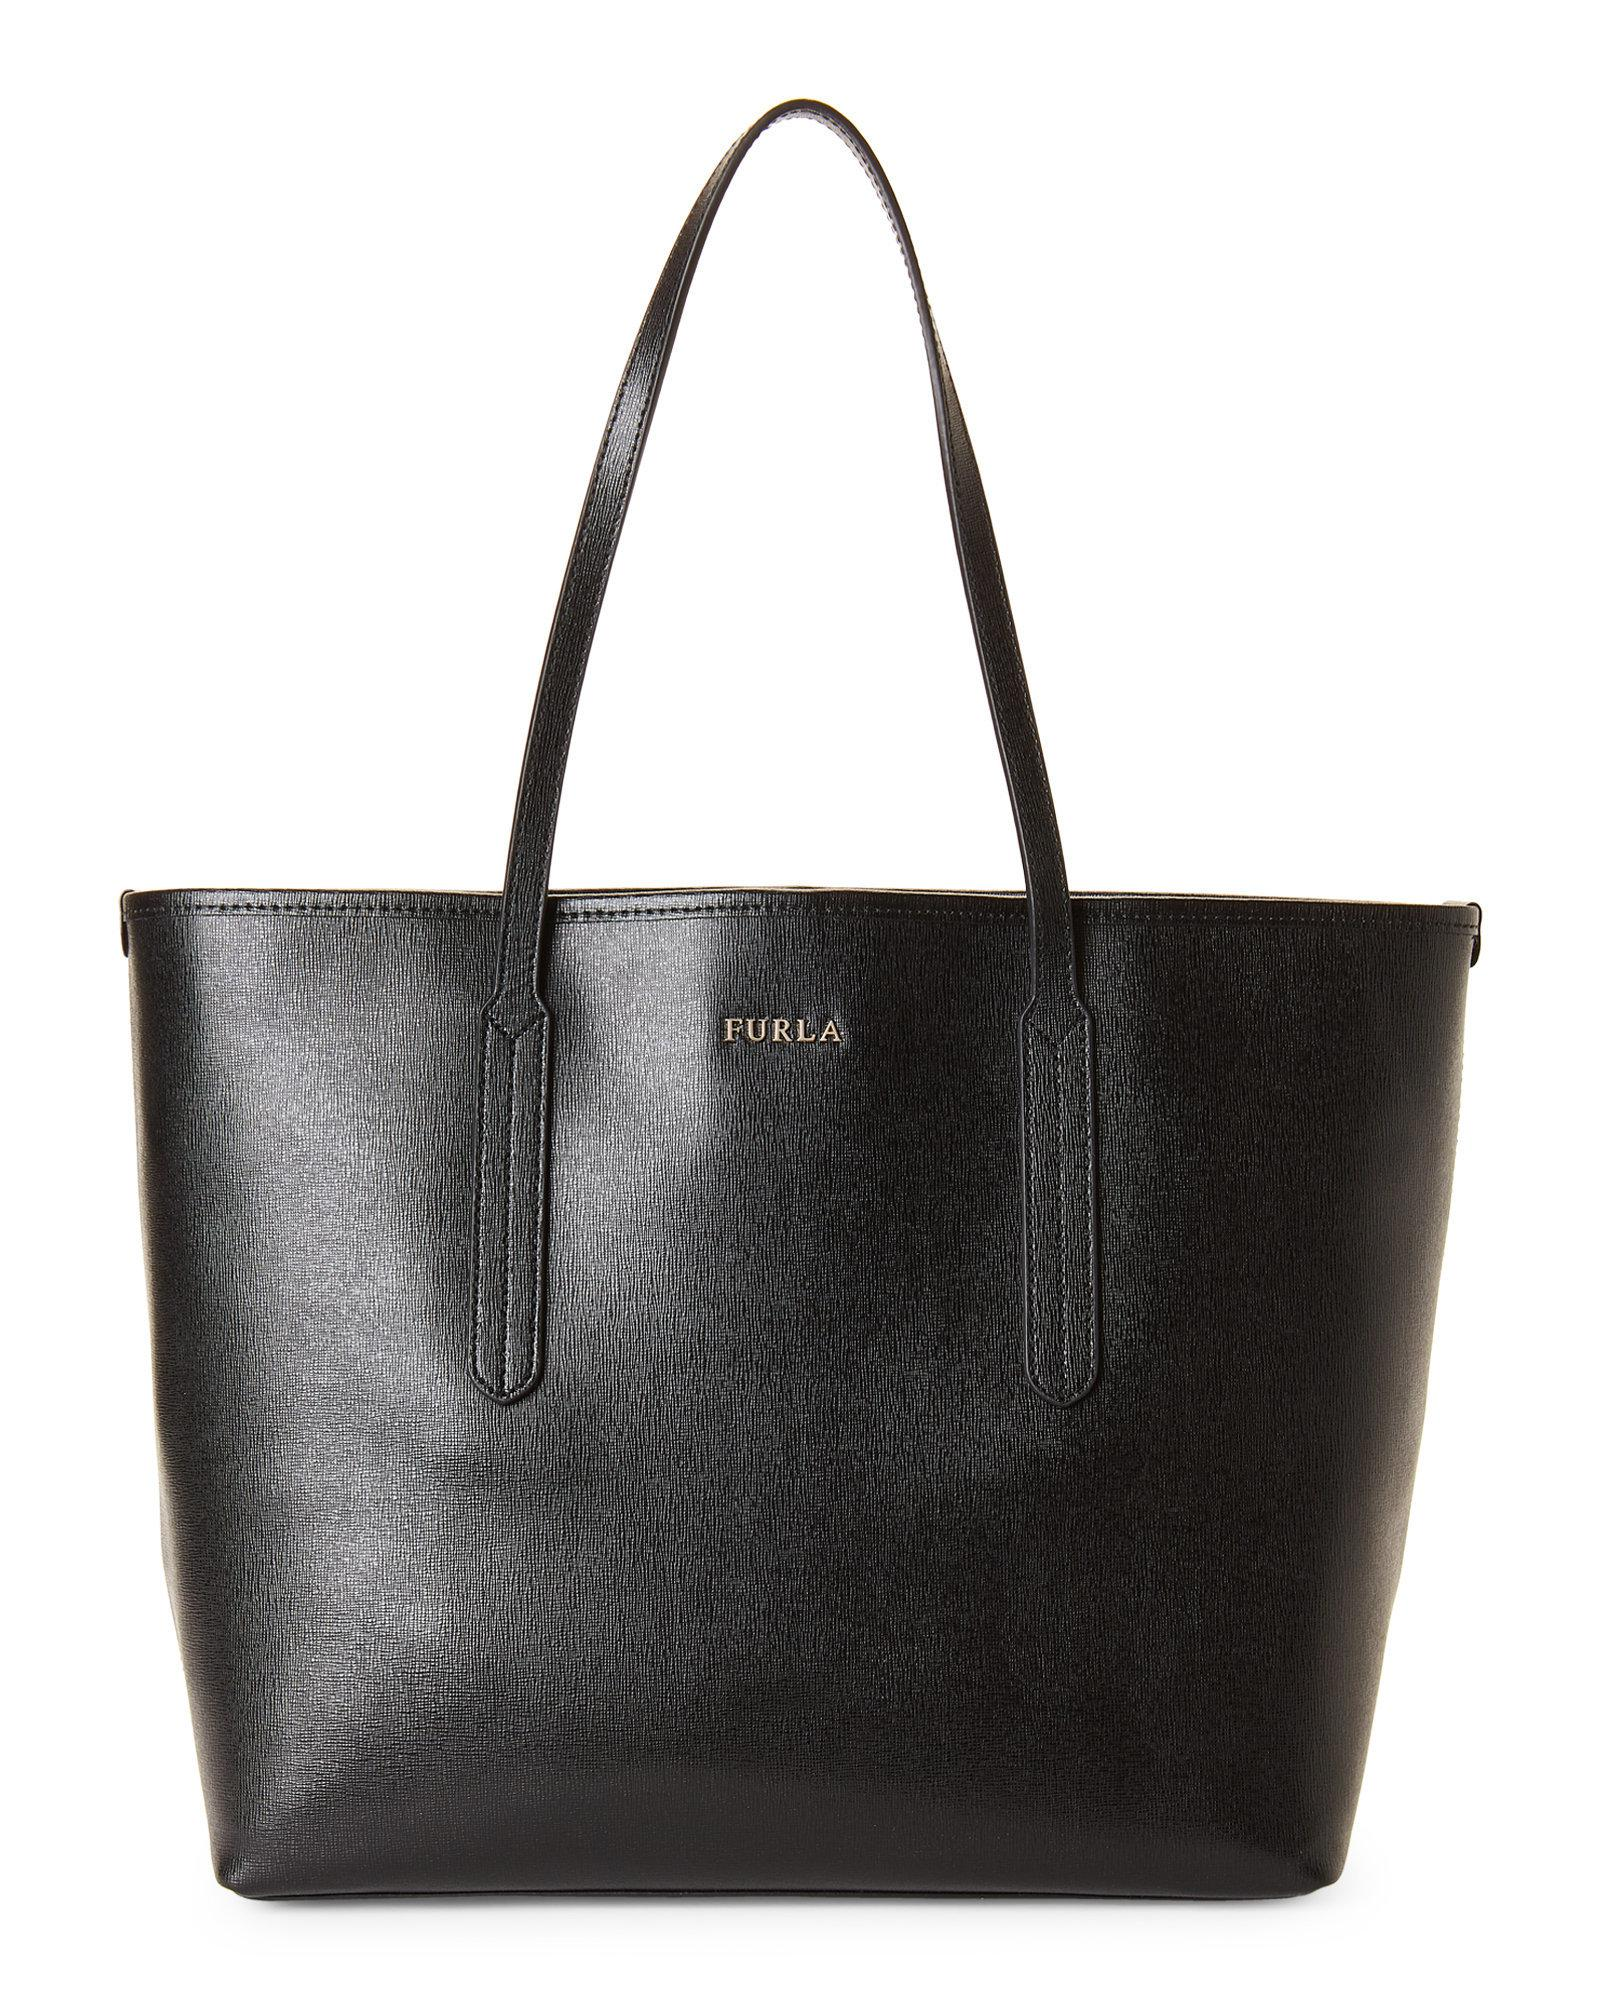 a0a4e5d7957e Furla Ariana Open Leather Tote in Black - Lyst